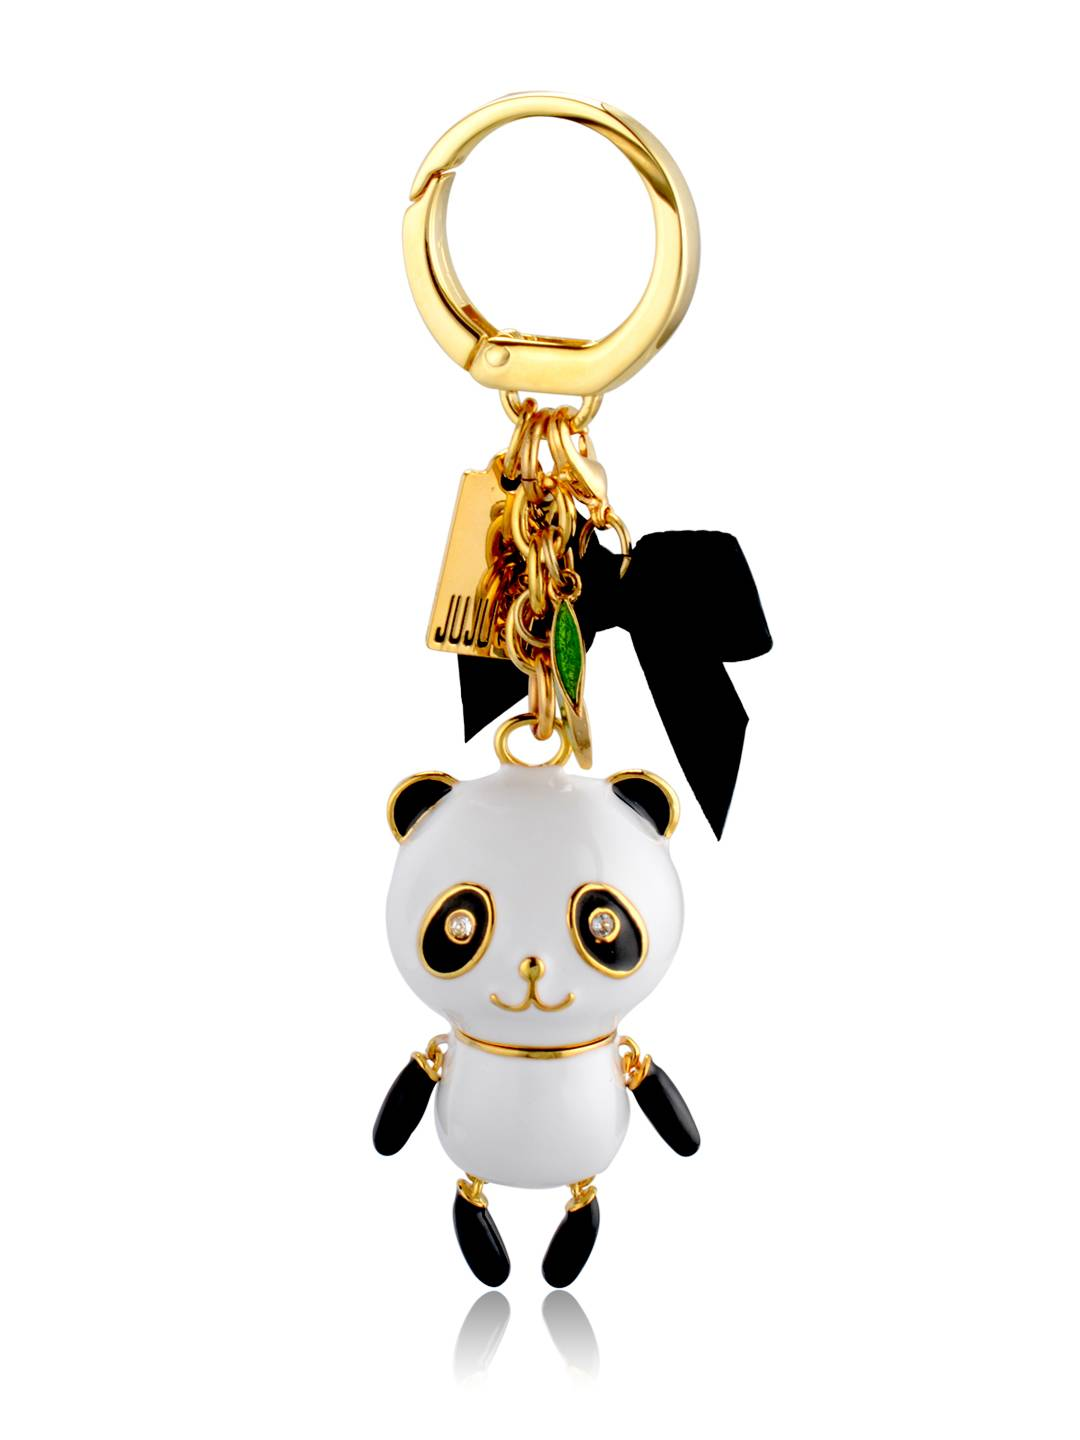 Panda USB-24K gold plating metal 8GB flash drive with enamel